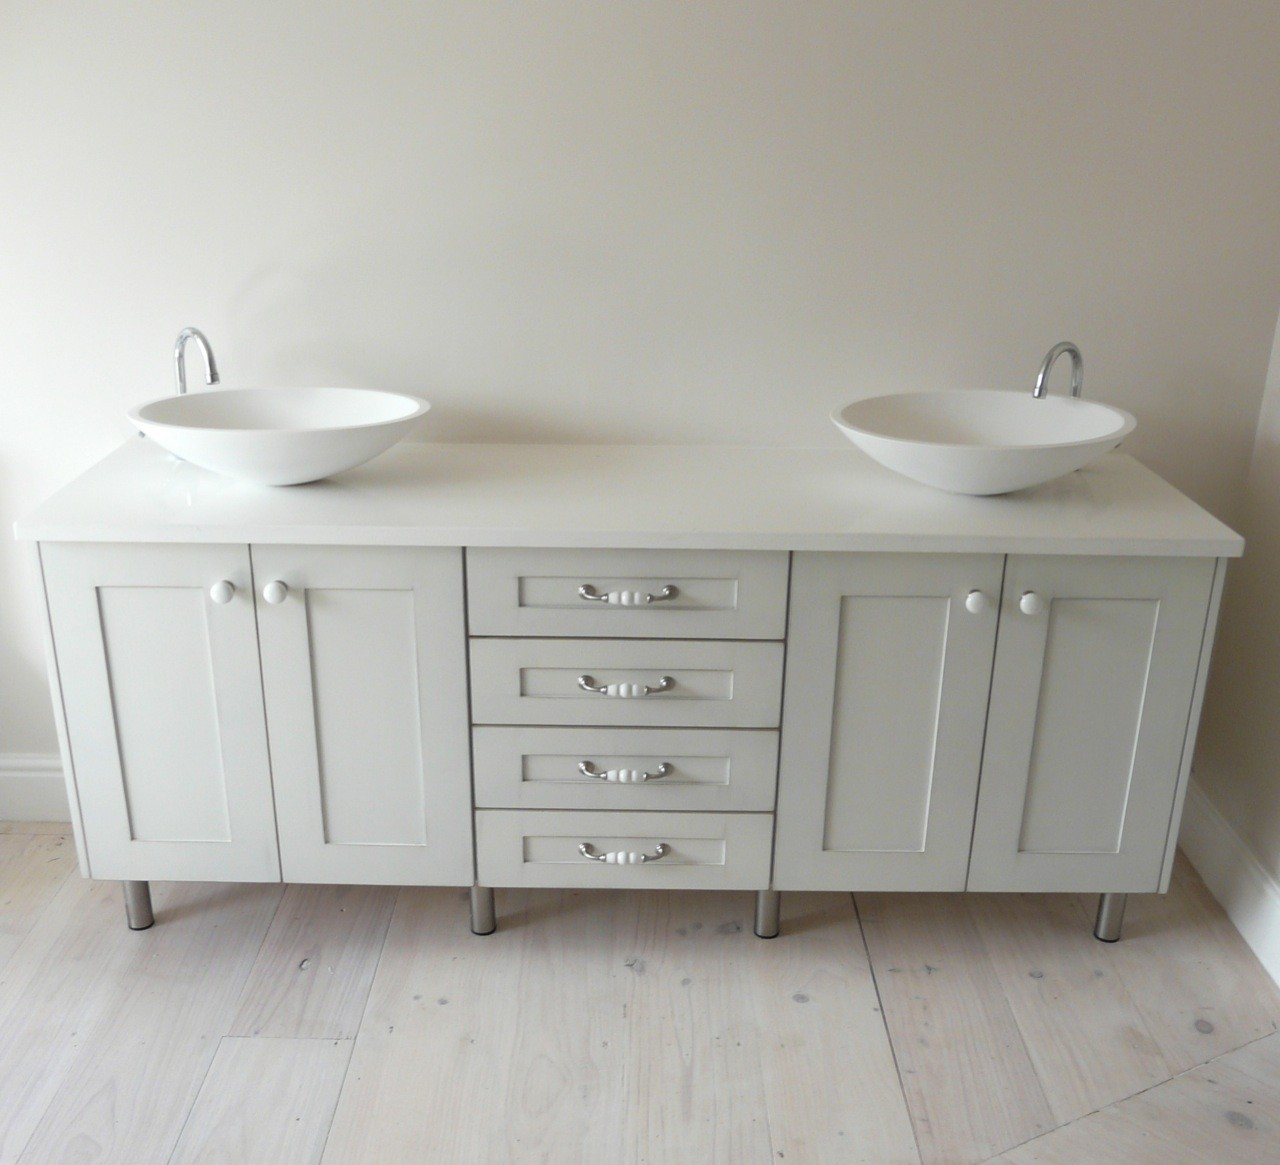 Fancy Shaker Small Bathroom Cabinet Lovely Modern White Shaker Bathroom throughout Shaker Bathroom Cabinets